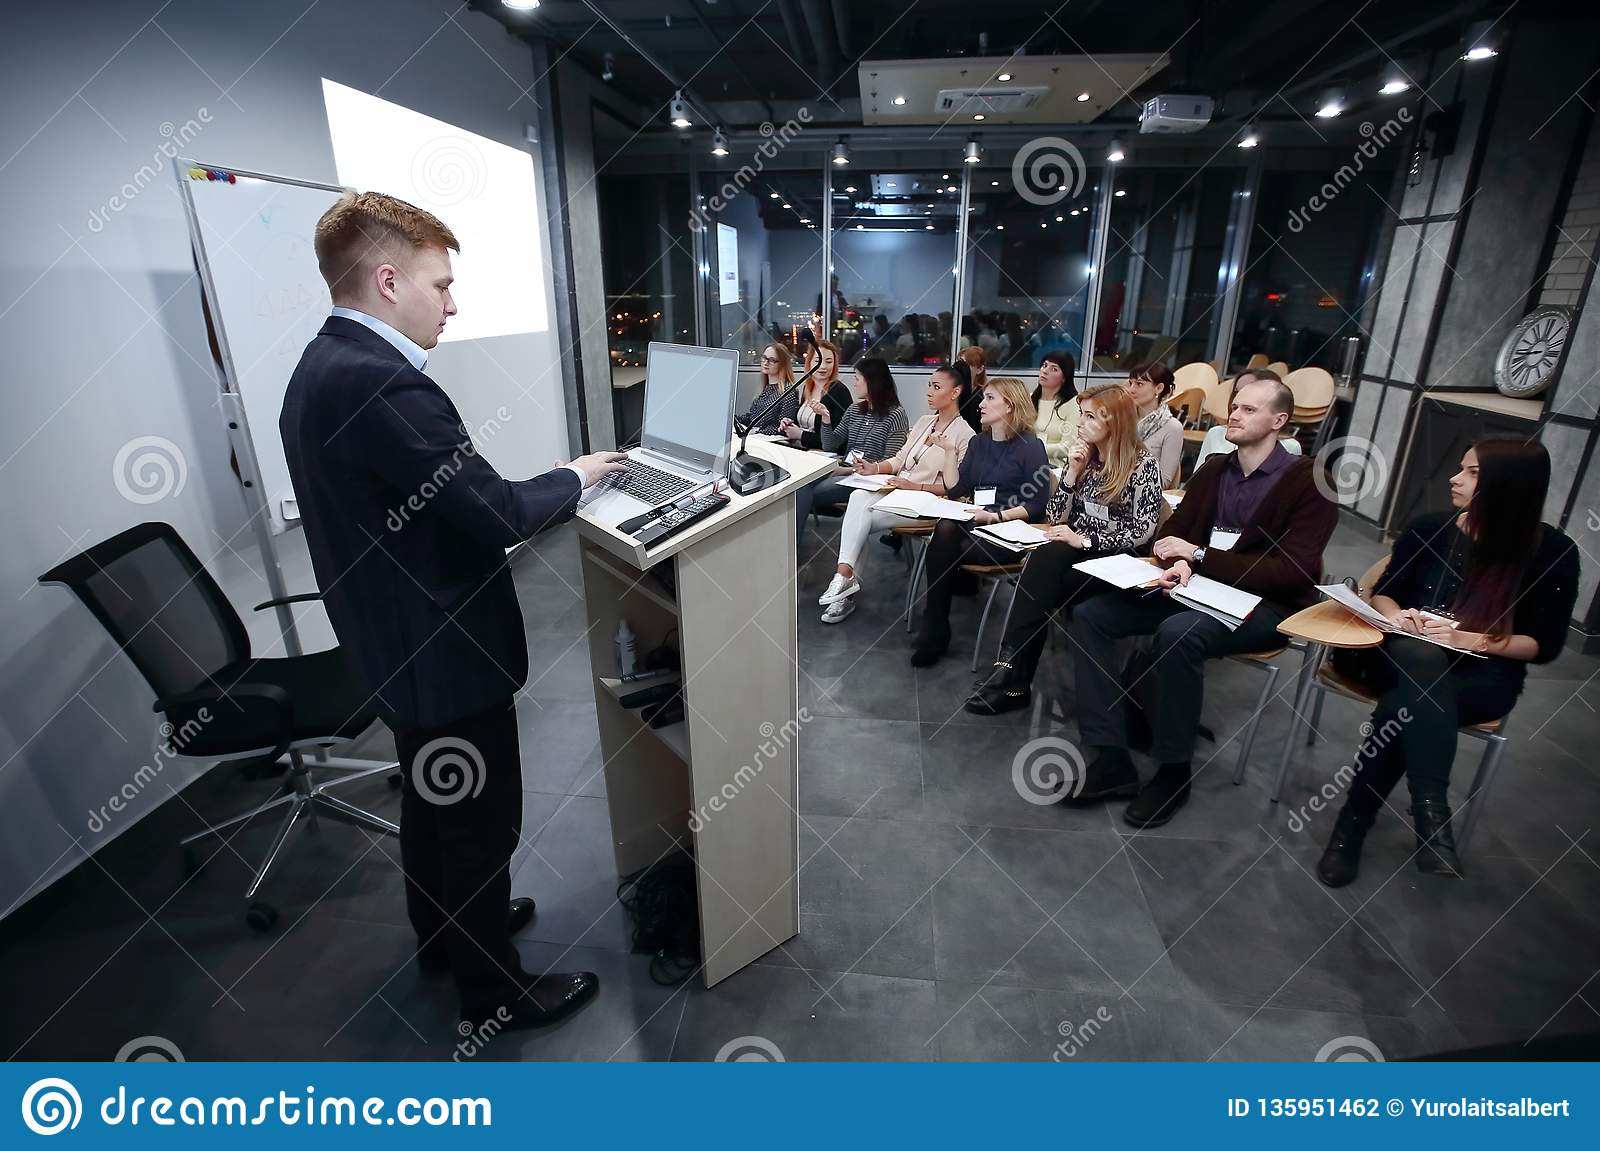 Project Manager conducts a meeting of senior staff.